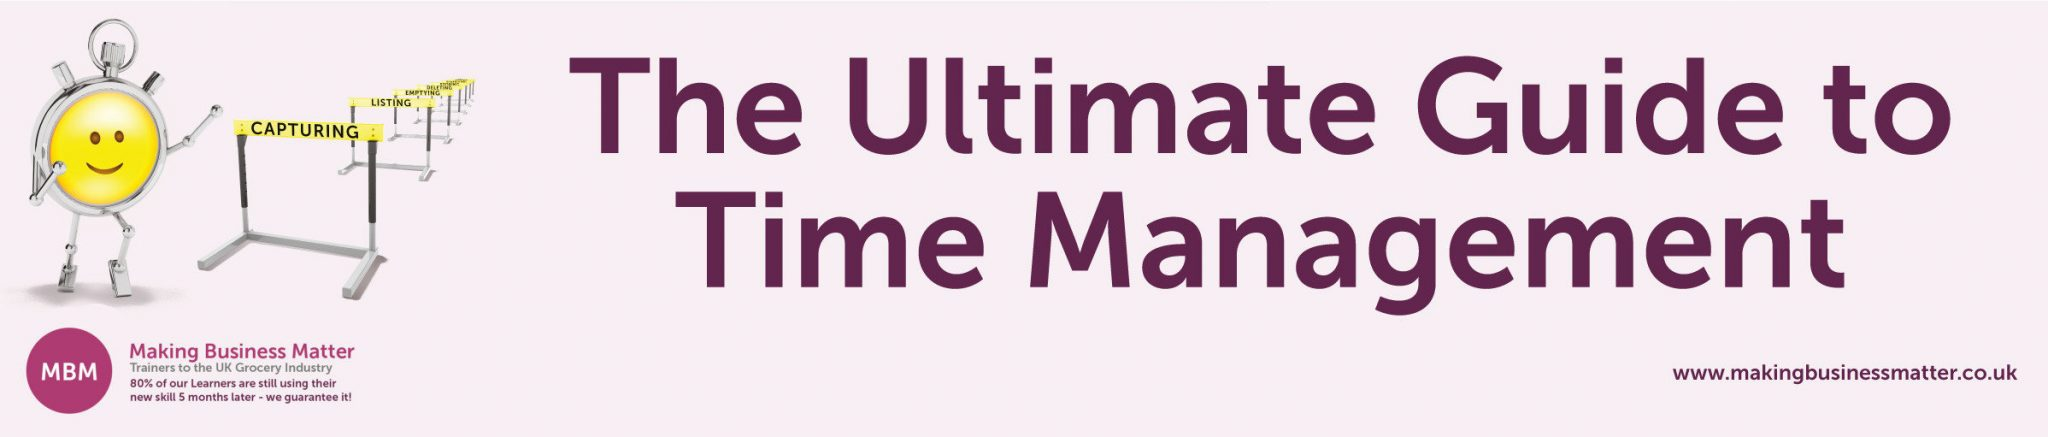 Banner for The Ultimate Guide to Time Management